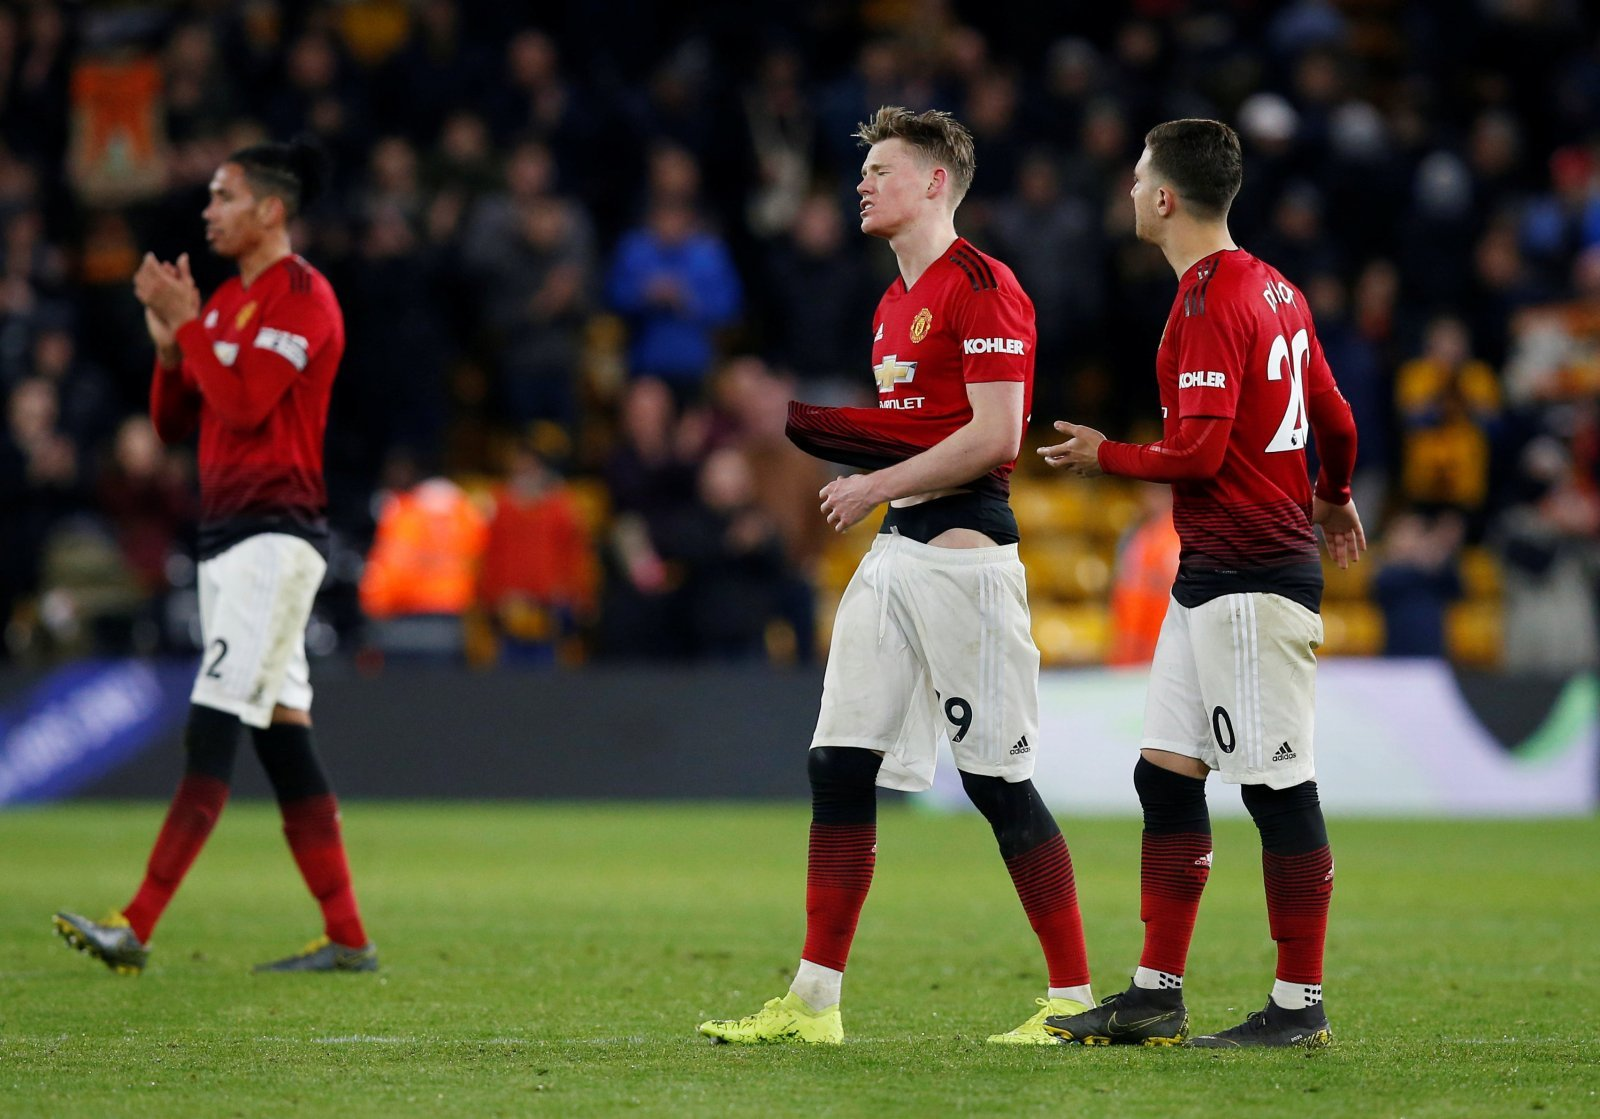 Unsung hero: Scott McTominay can hold his head high after valiant efforts